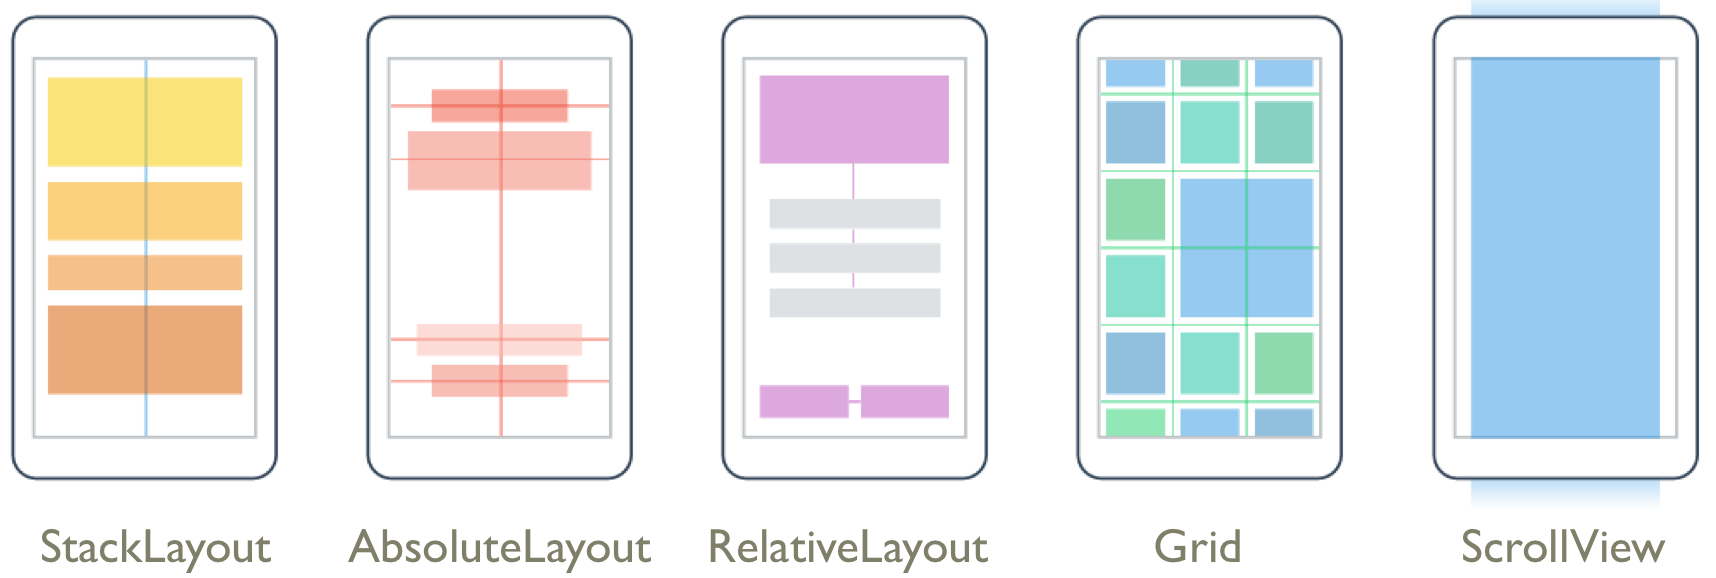 Layout types include stack layout, absolute layout, relative layout, grid, and scrollview